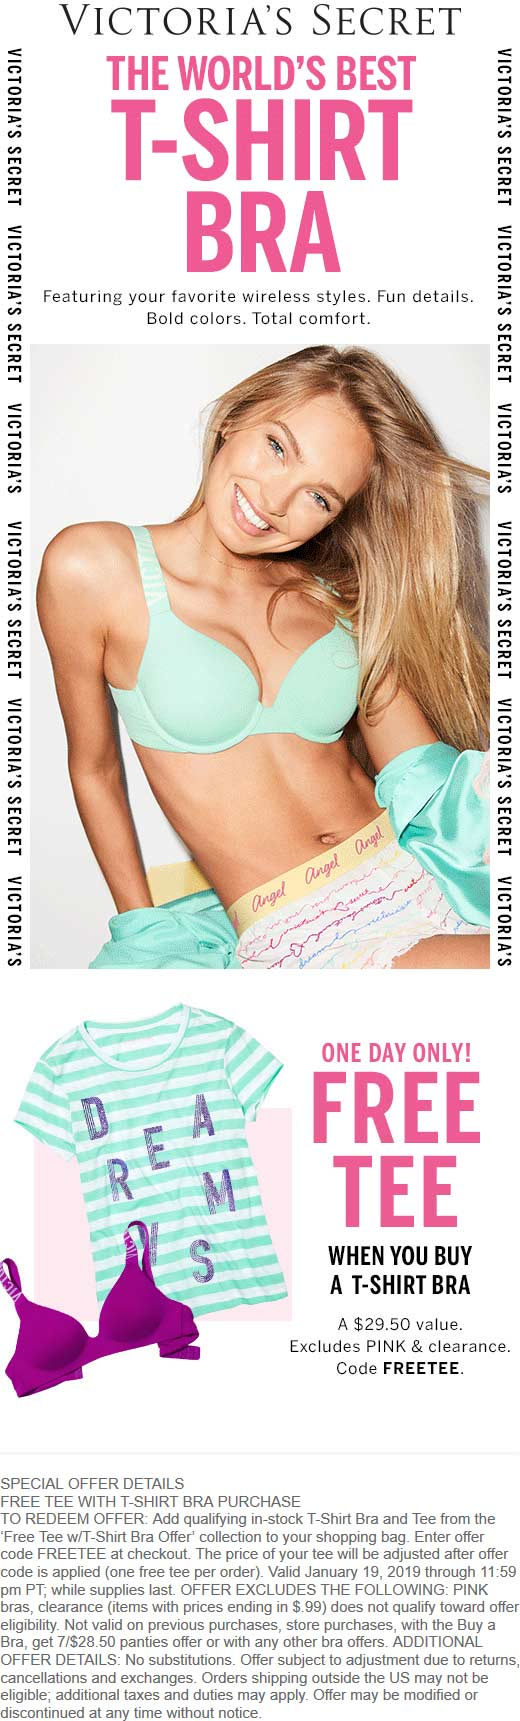 Victorias Secret Coupon February 2019 Free t-shirt with your bra today at Victorias Secret, or online via promo code FREETEE